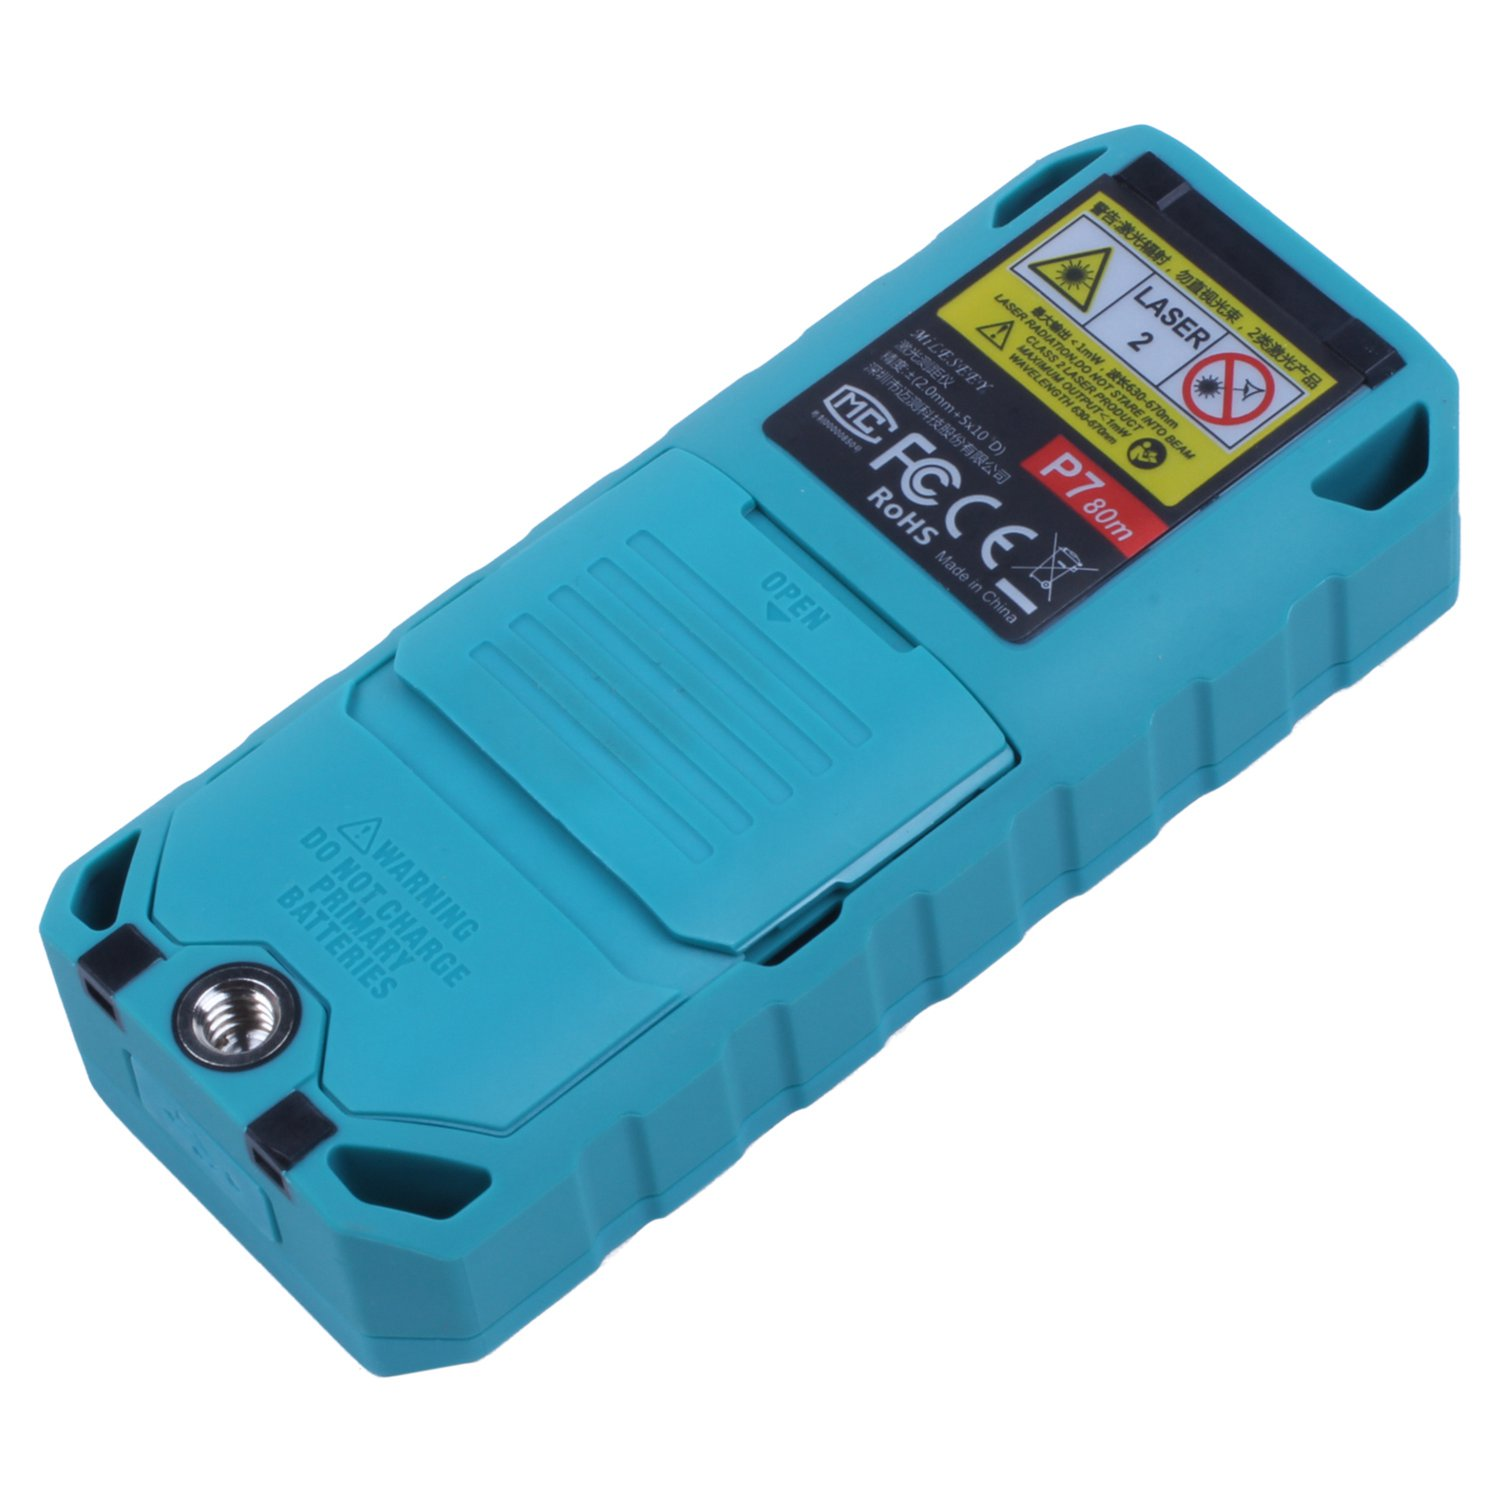 Mileseey P7 Bluetooth Laser Rangefinder with Rotary Touch Screen Rechargerable Laser Meter thgs mileseey p7 bluetooth laser rangefinder with rotary touch screen rechargerable laser meter